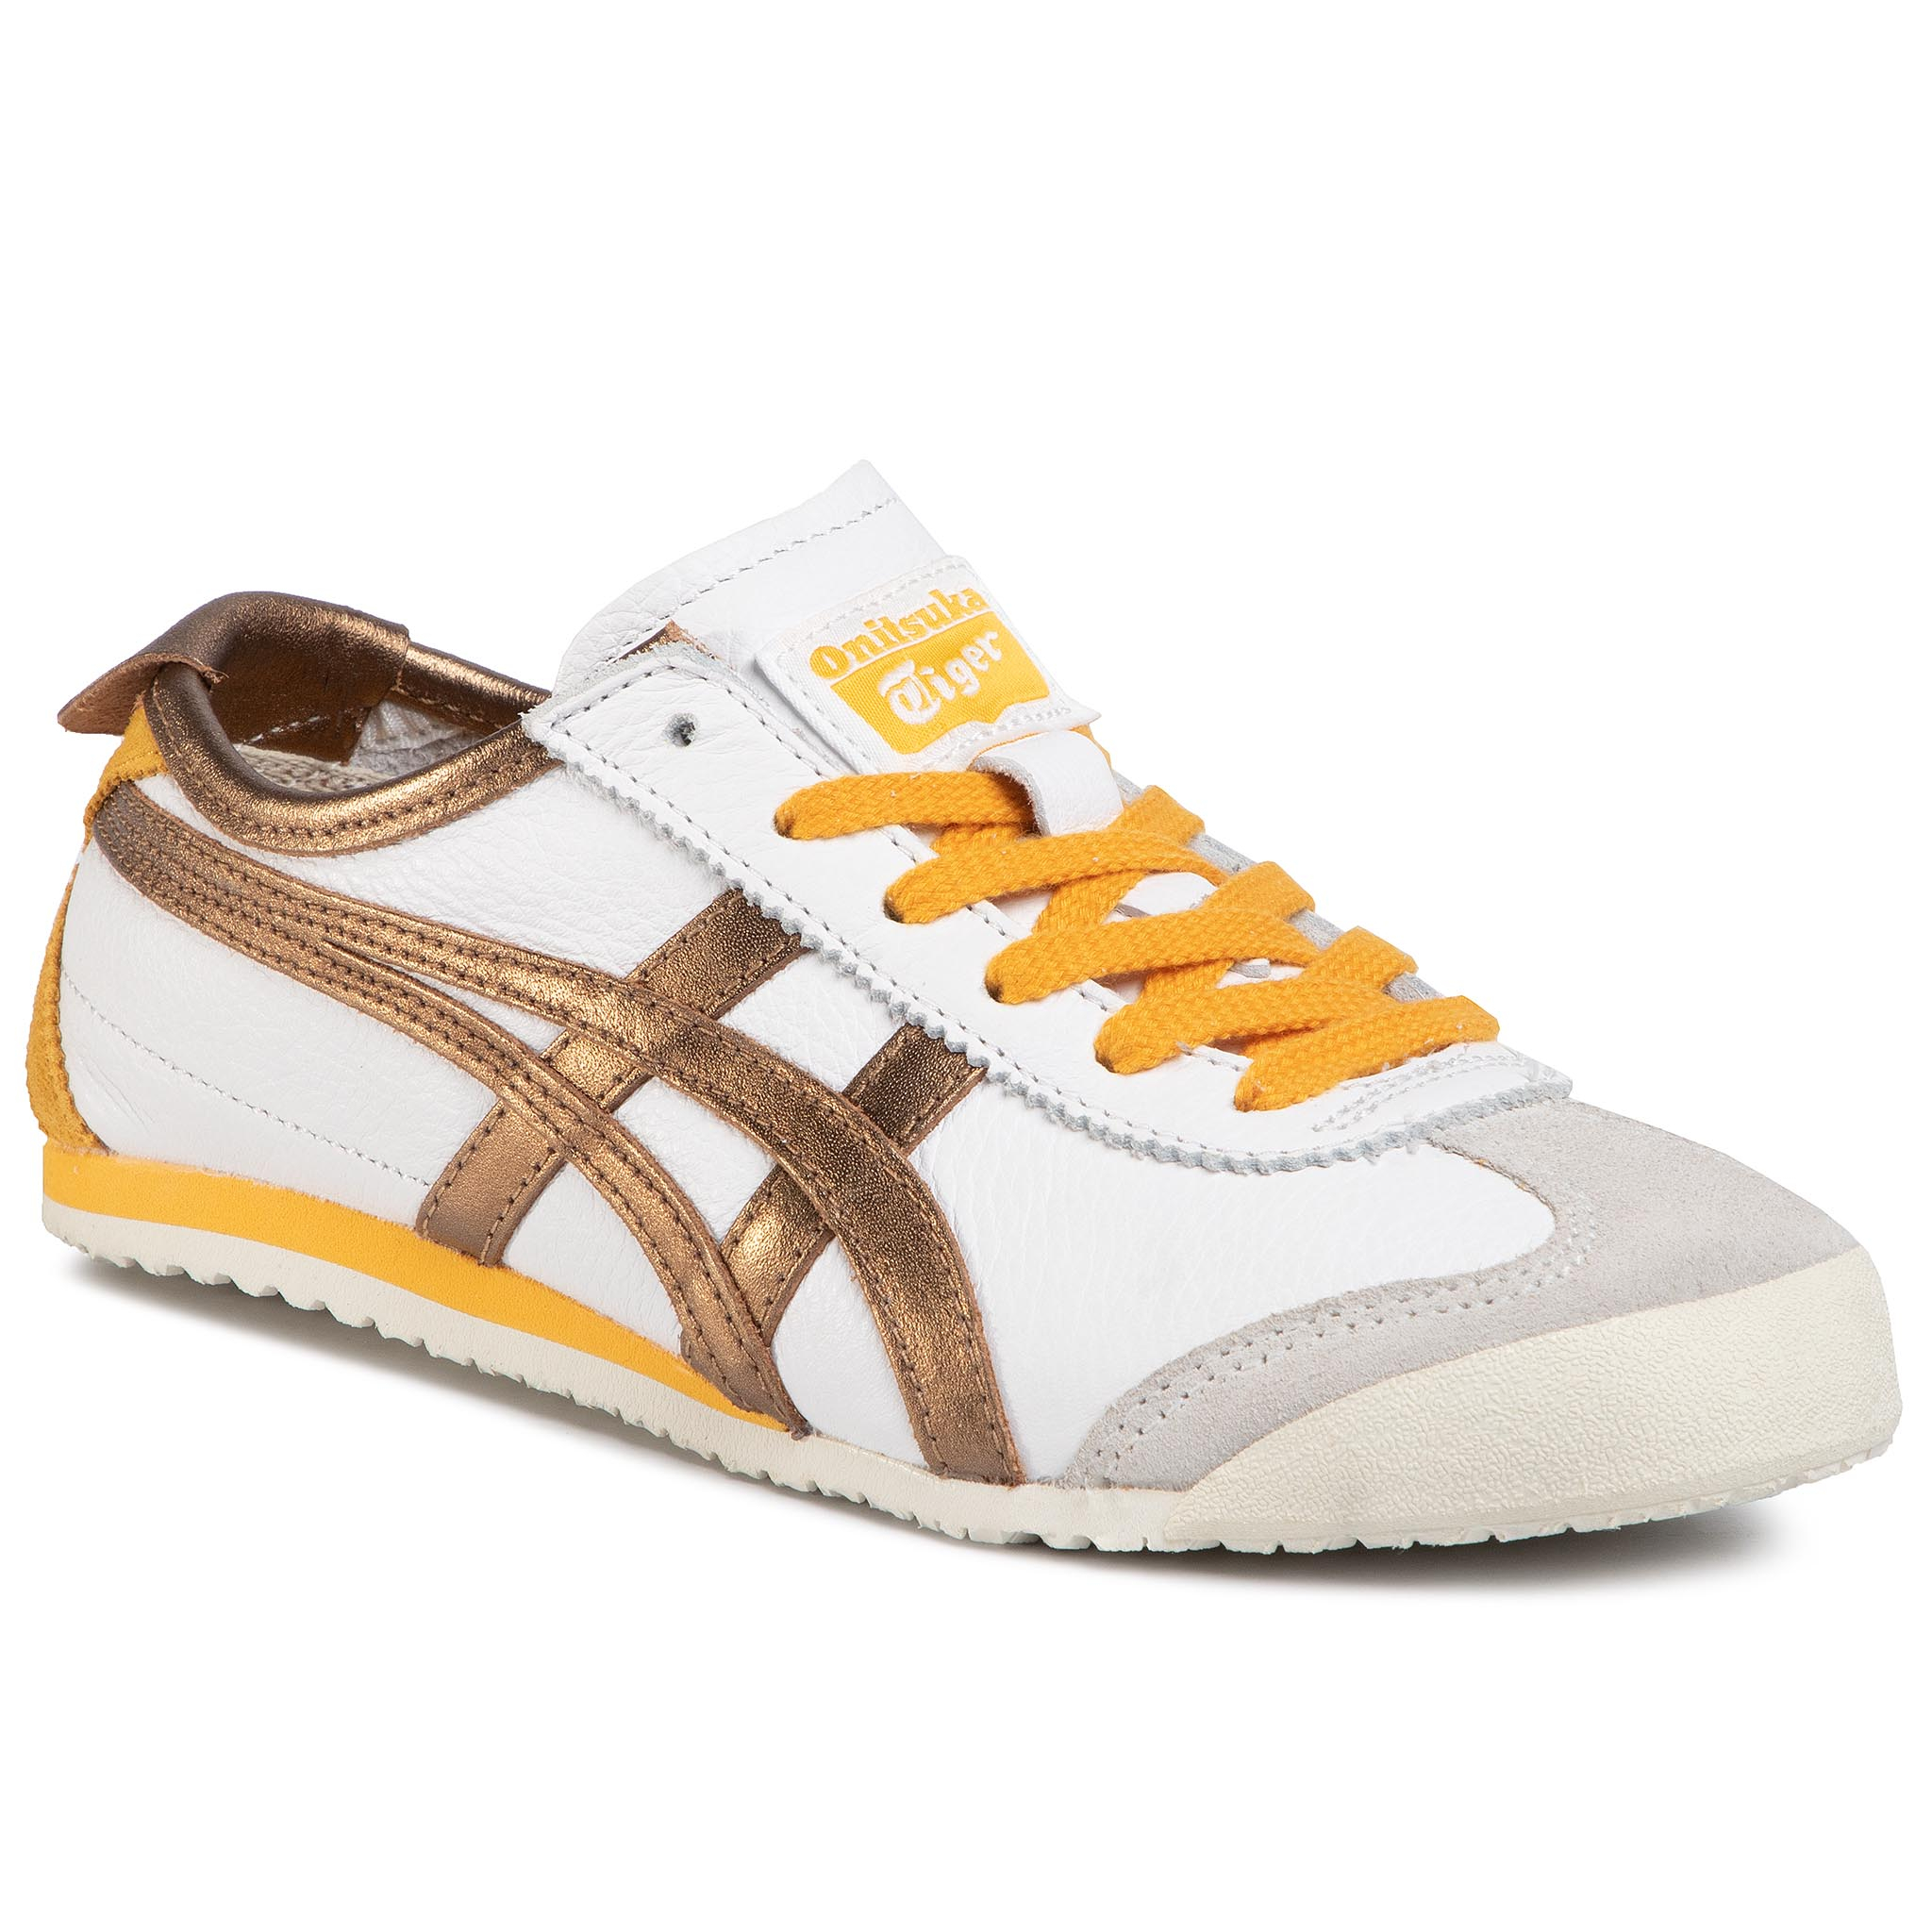 Sneaker Onitsuka Tiger Sneakers ONITSUKA TIGER - Mexico 66 1183A788 White/Pure Bronze 100